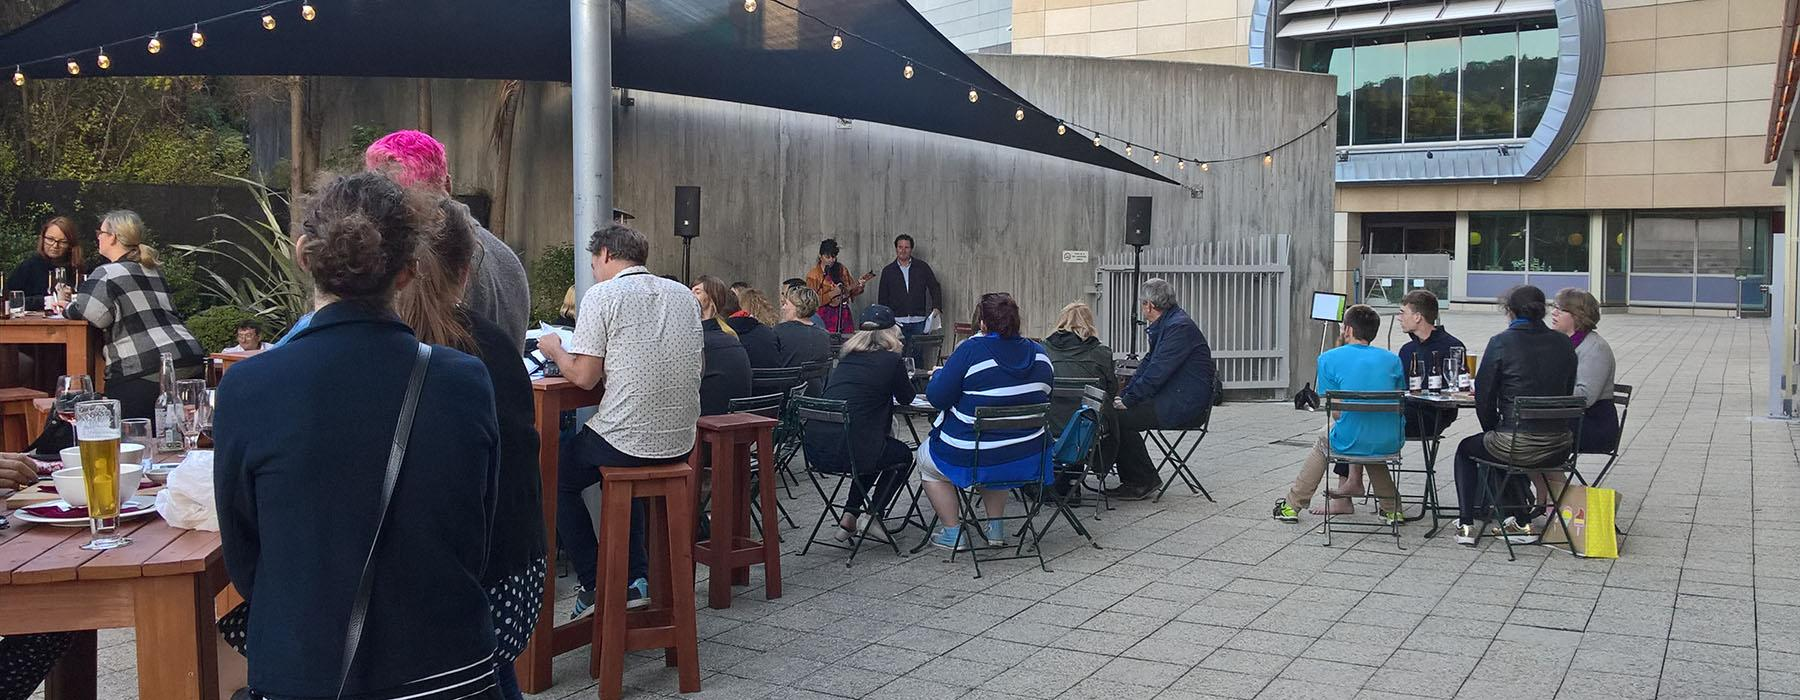 General view of Red Gates bar. People sitting at tables watching two people perform